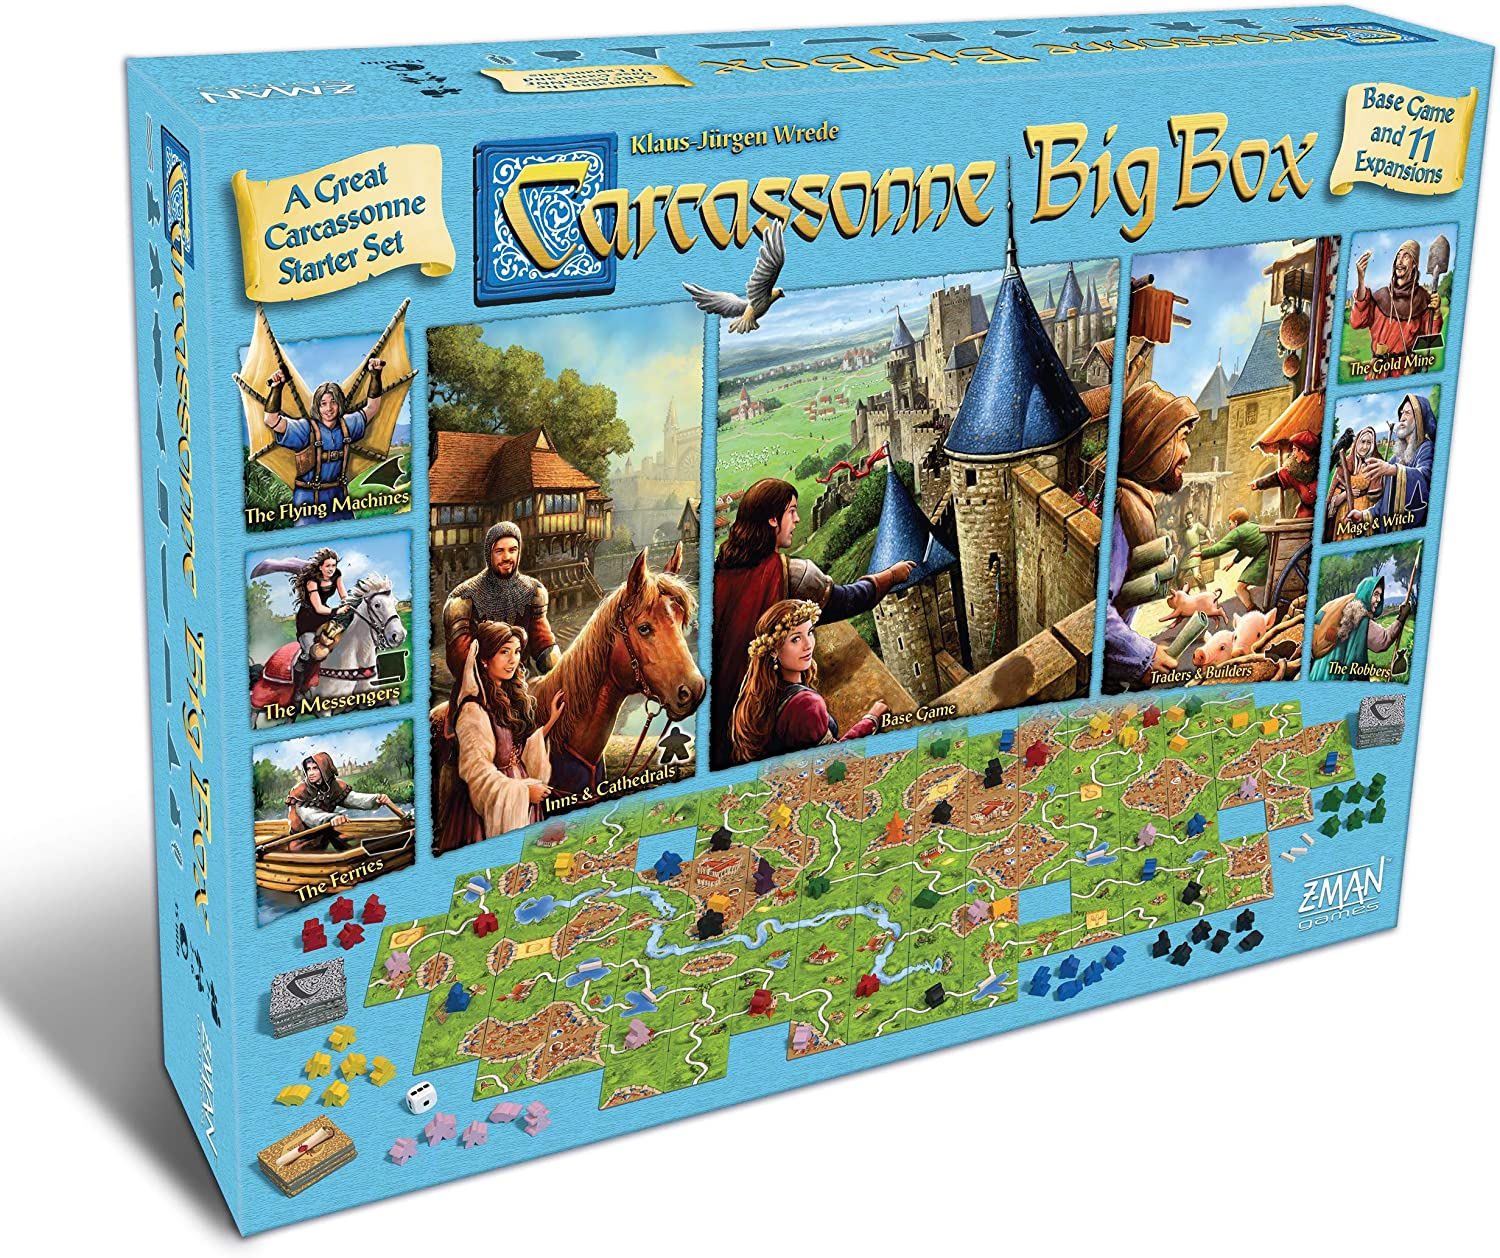 Carcassonne Board Game Big Box Fam GAME BASE Cheap mail order shopping 11 Max 61% OFF EXPANSIONS